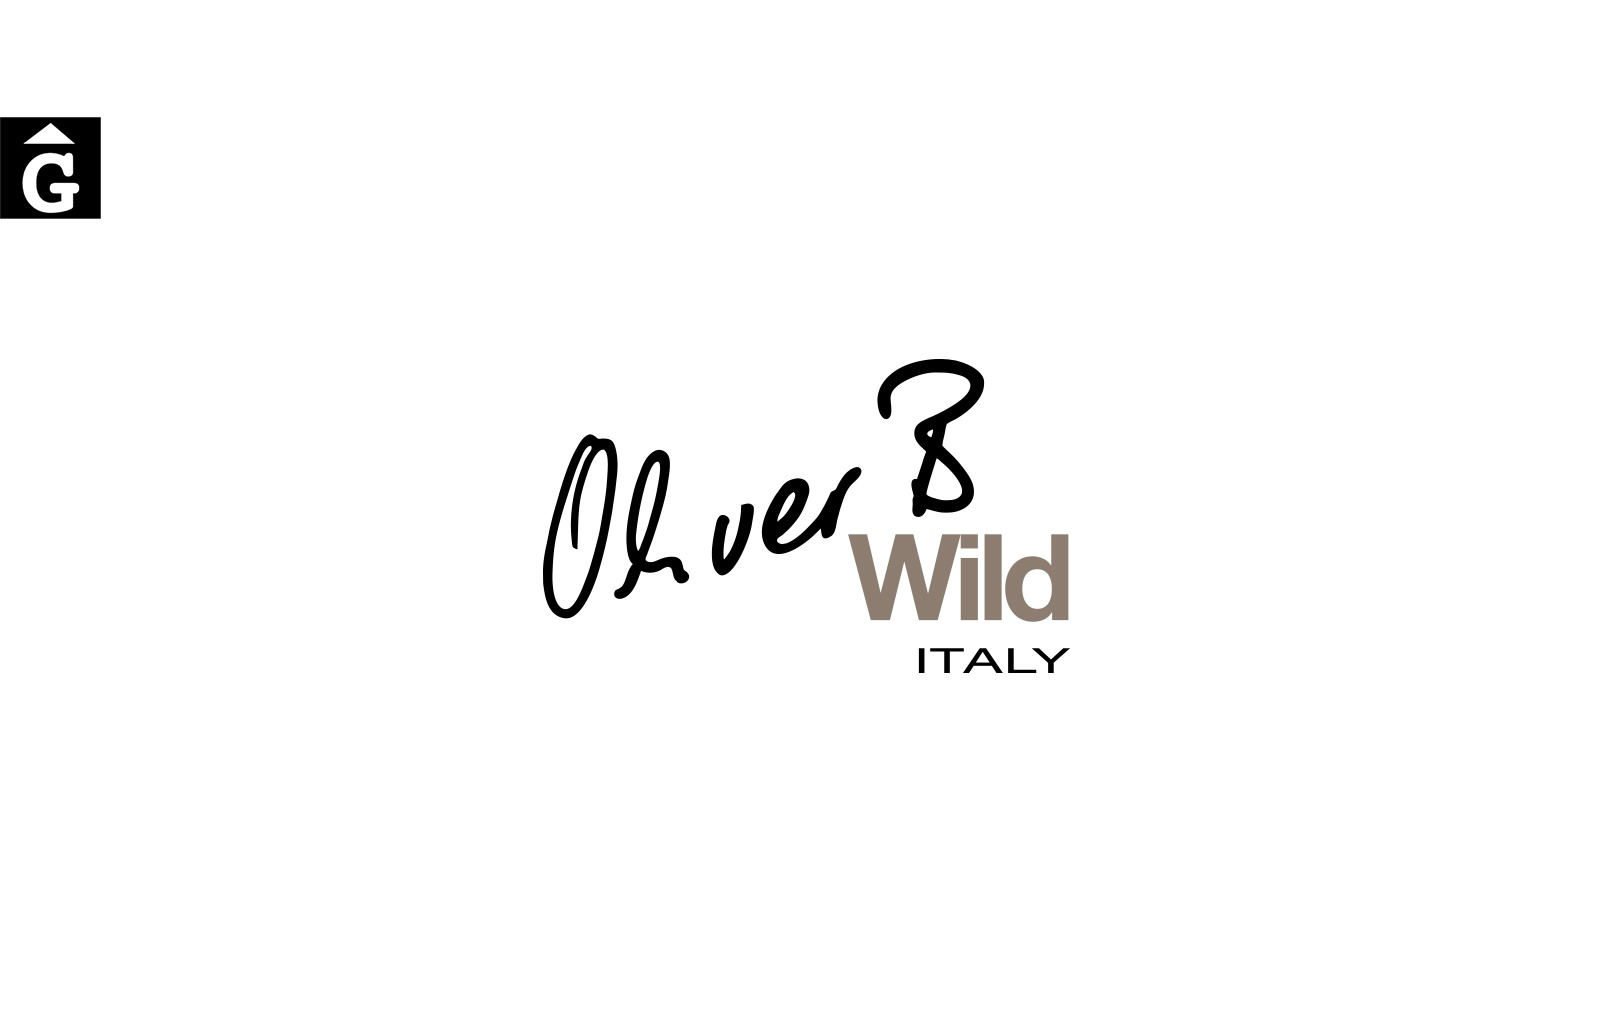 Oliver B Wild Italy Categories Marques per mobles Gifreu